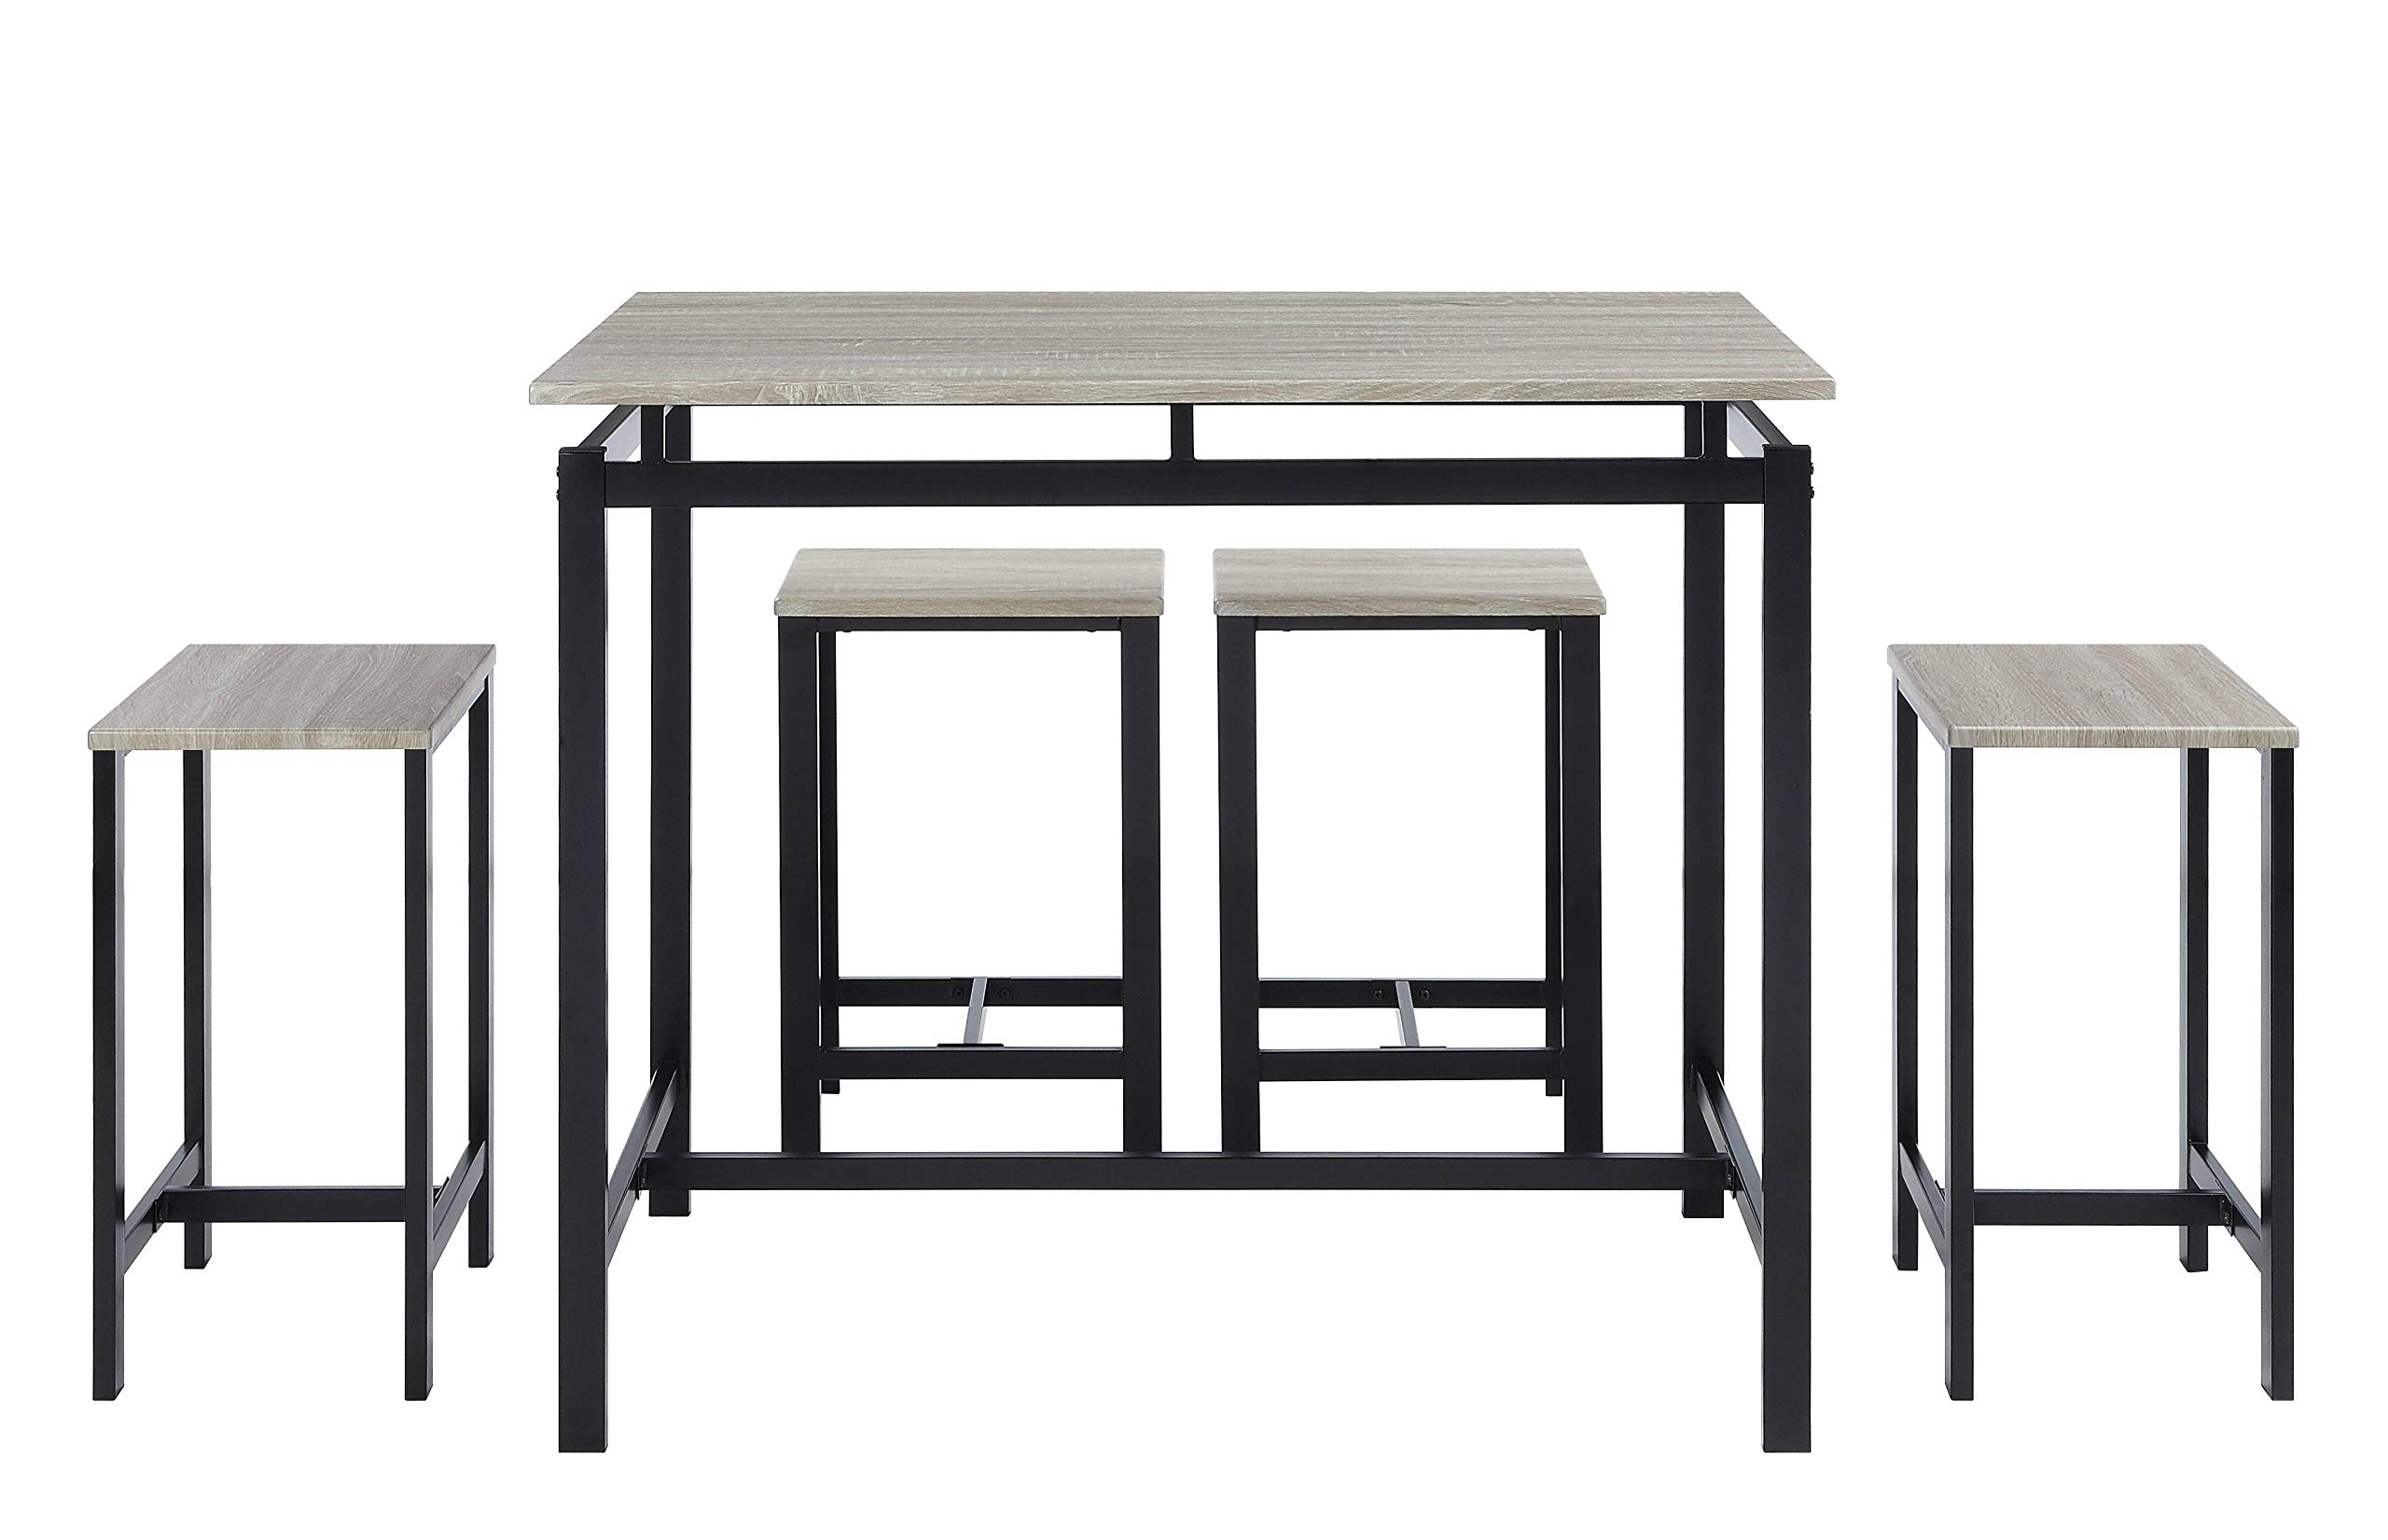 Abington Lane Kitchen Table Set with 4 Stools - Versatile, Tall, Modern Table Set for Kitchen, Dining Room, and Living Room (Washed Oak) by Abington Lane